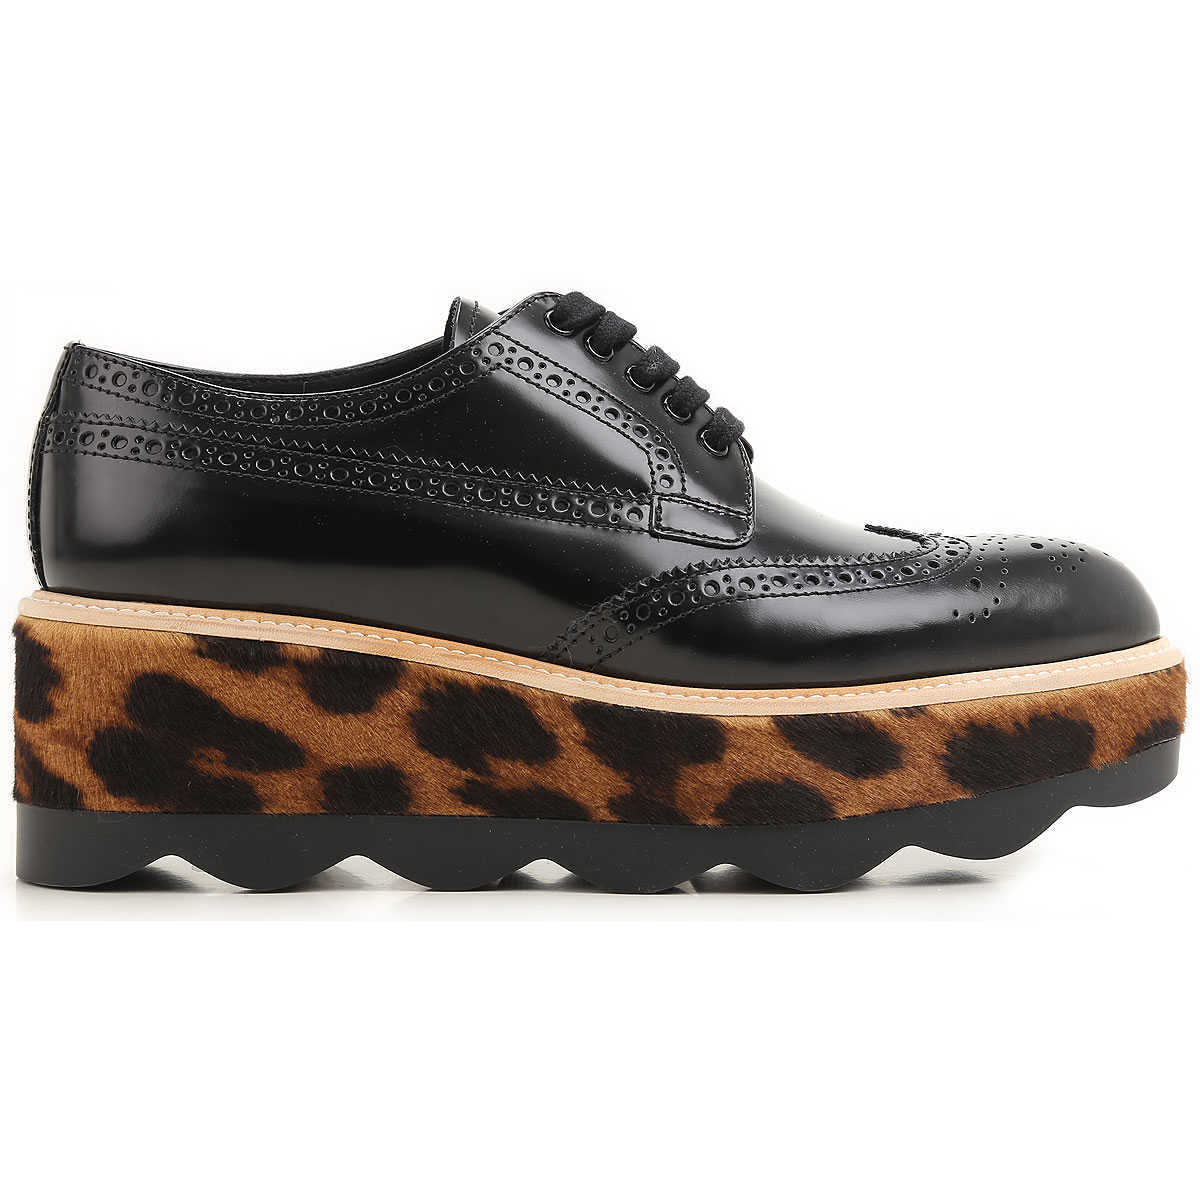 Prada Brogues Oxford Shoes On Sale in Outlet Black - GOOFASH